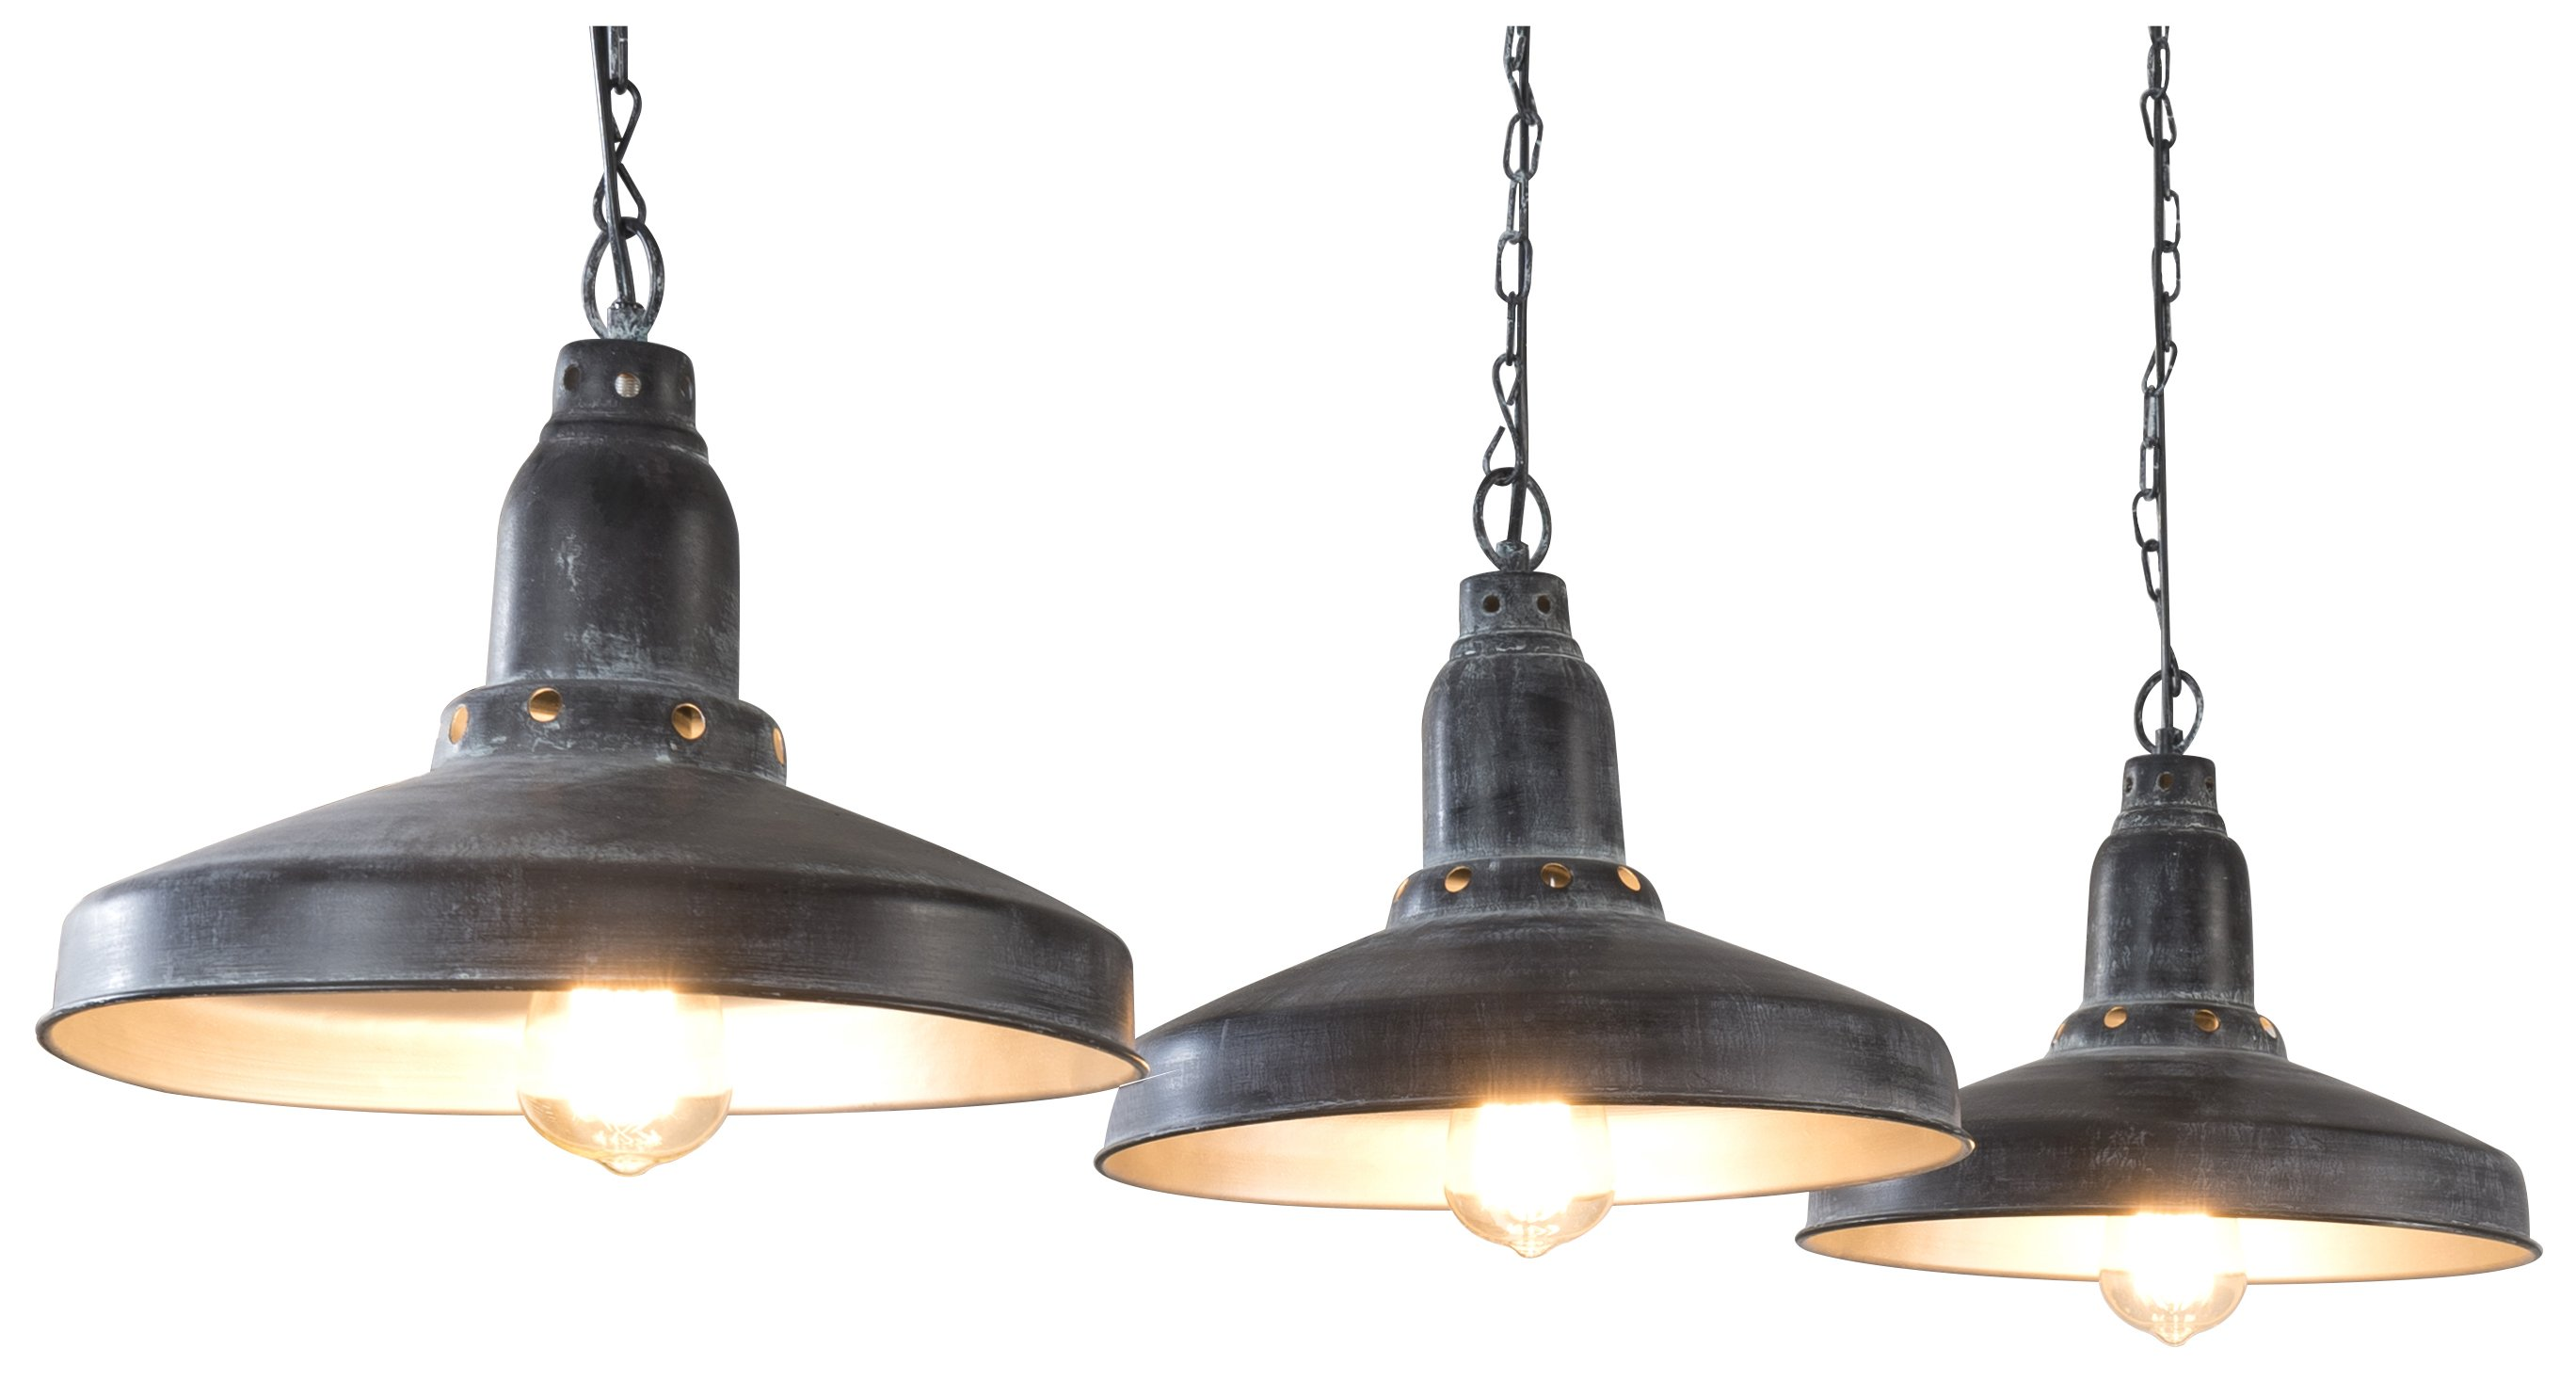 Divalii Industry Aged hanglamp